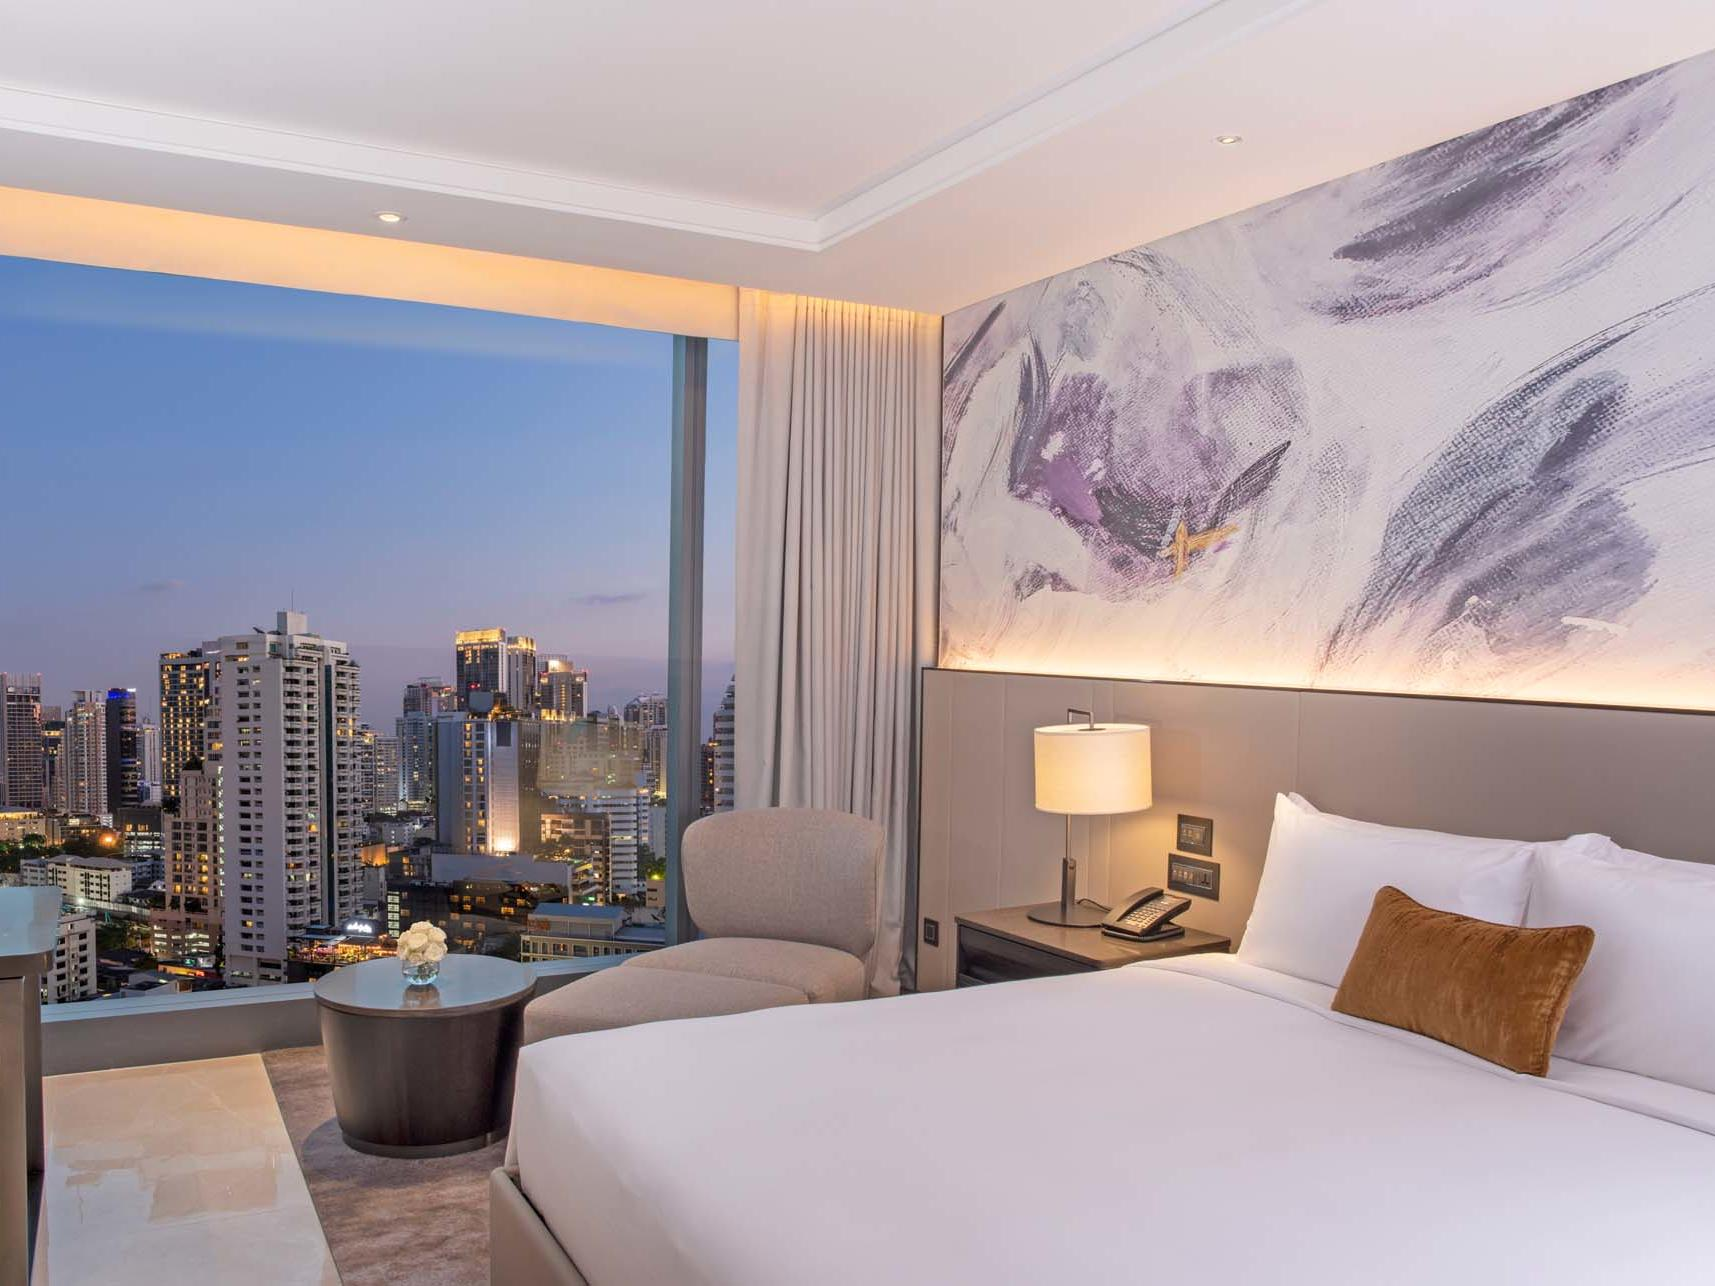 modern guestroom with large windows and city view